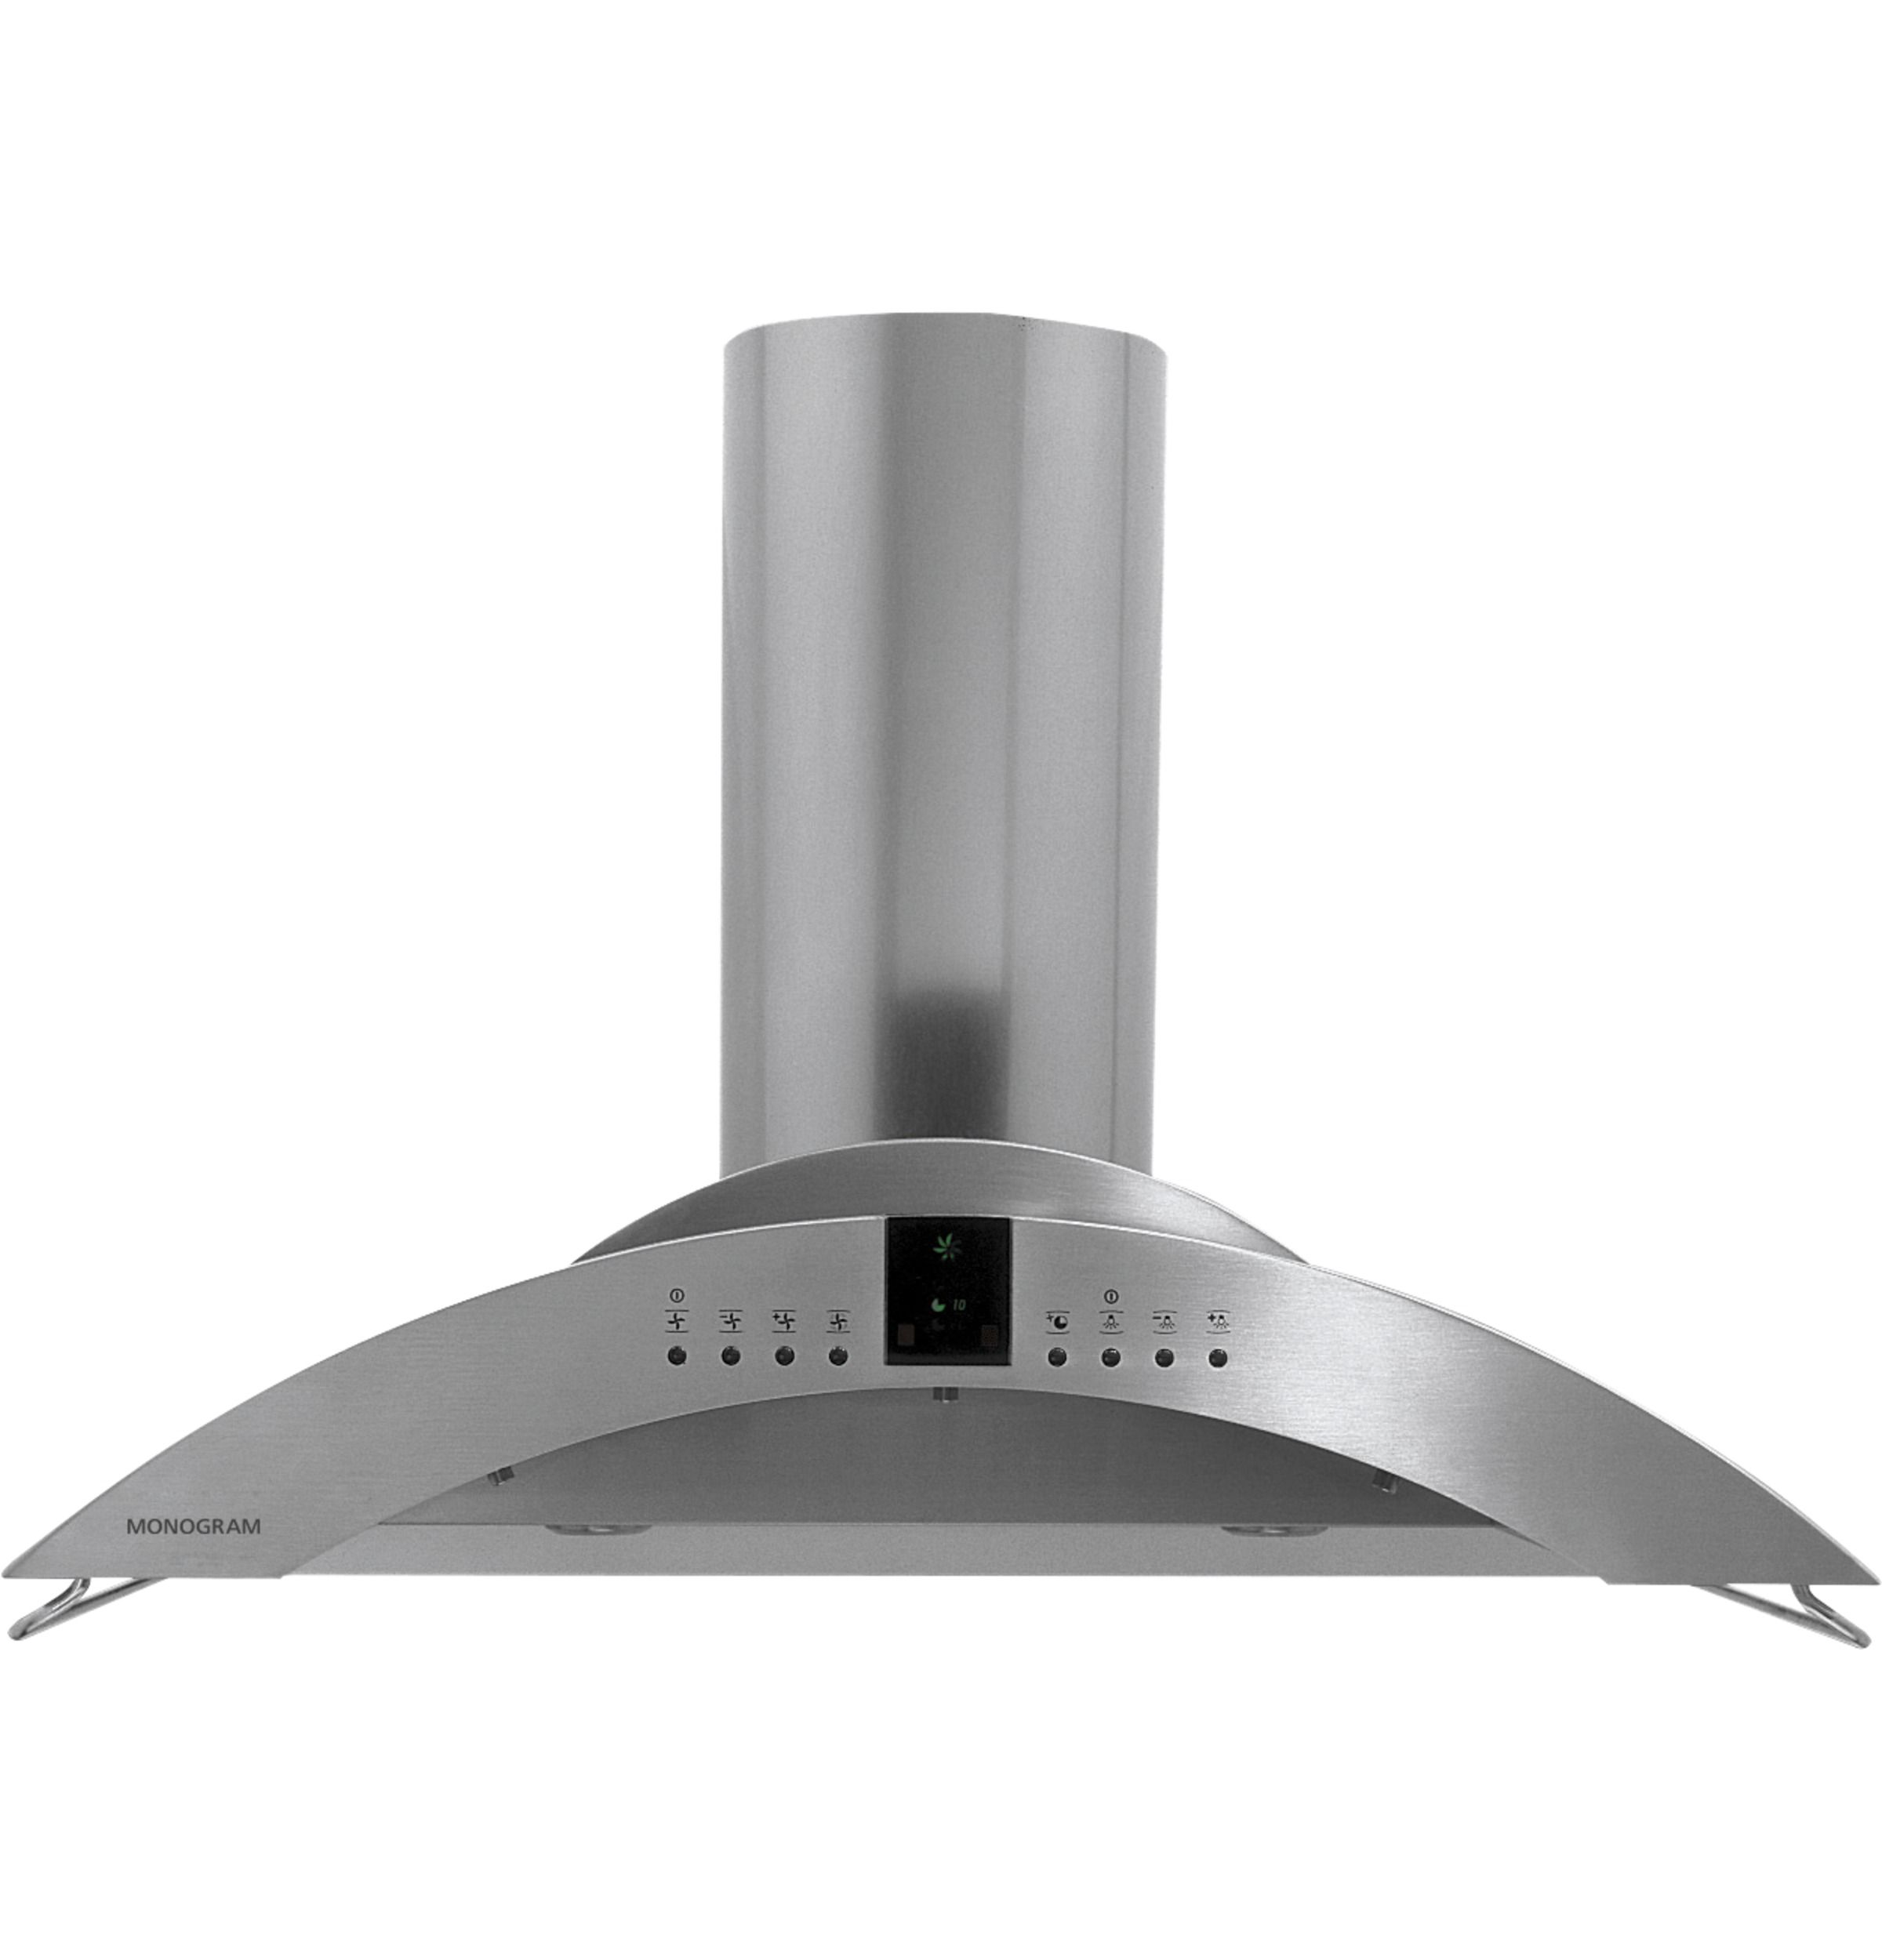 Provide Complete 140f Simmer To Rapid Boil Flexibility On All Burners The Burners Are Sealed To The Cooktop For Monogram Appliances Vent Hood Island Vent Hood